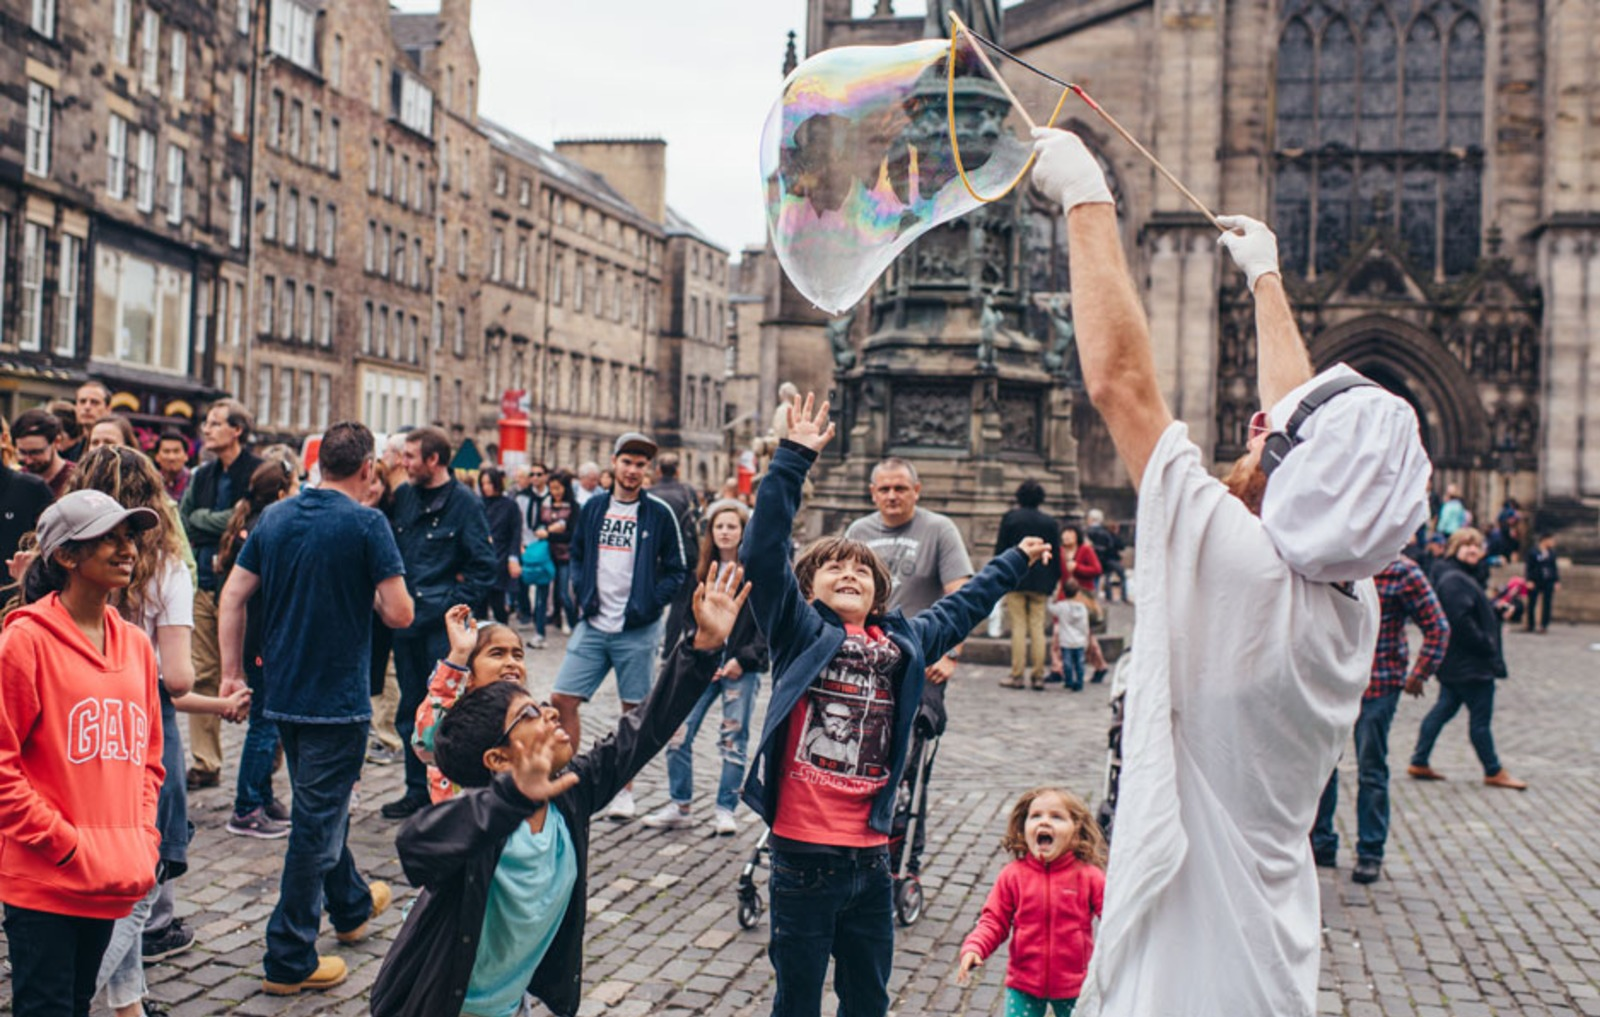 festival-fringe-edinburgh-2019-work-on-interacting-with-local-people